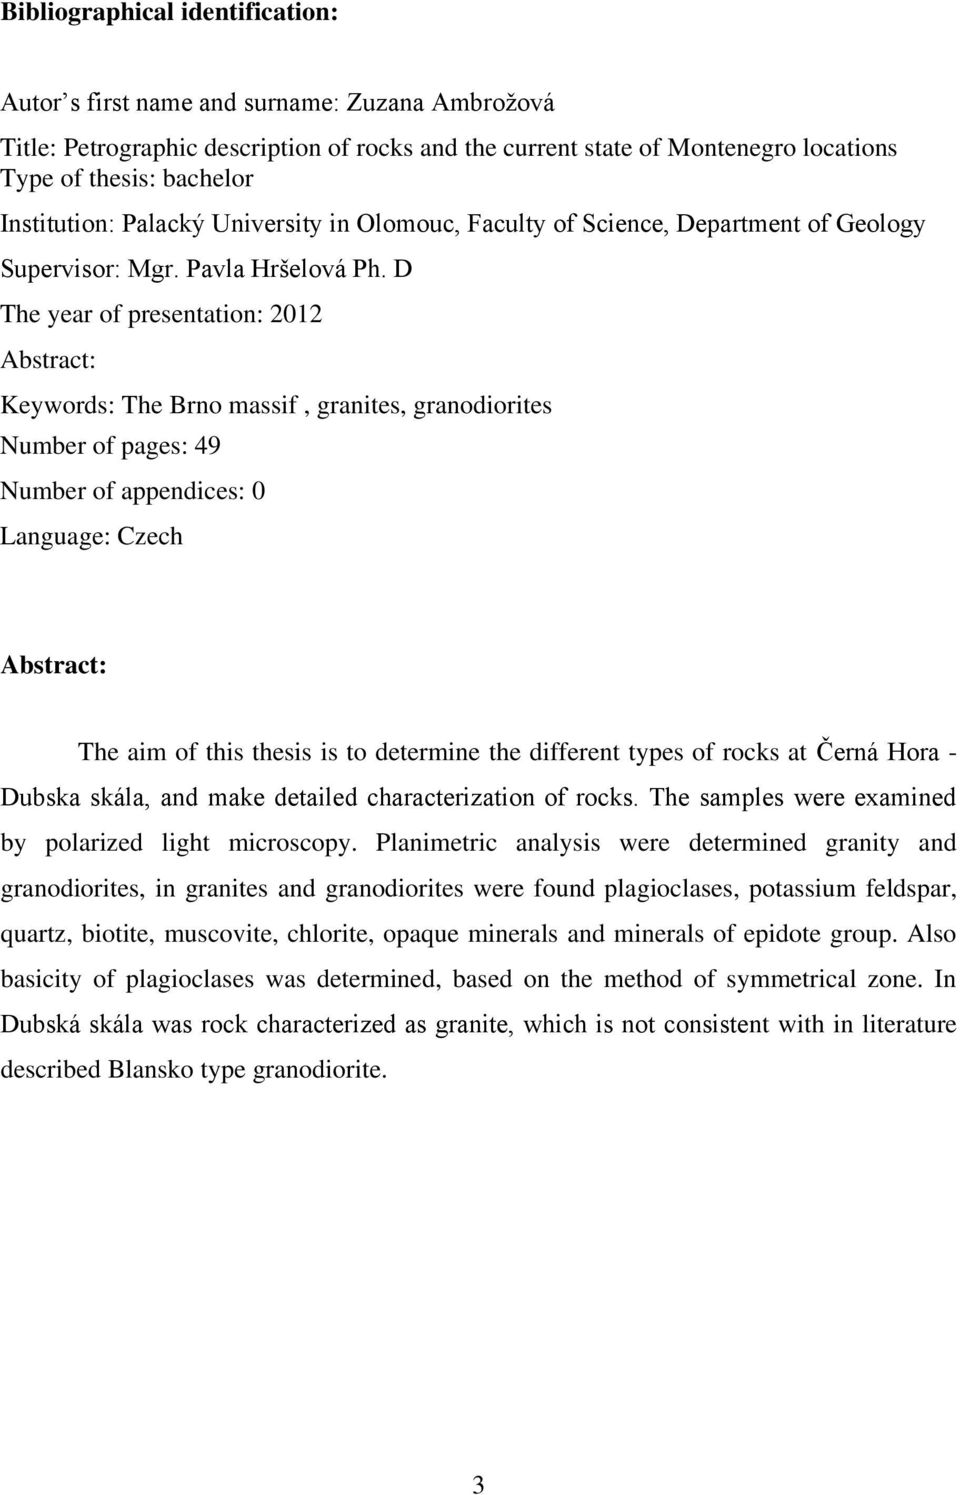 D The year of presentation: 2012 Abstract: Keywords: The Brno massif, granites, granodiorites Number of pages: 49 Number of appendices: 0 Language: Czech Abstract: The aim of this thesis is to